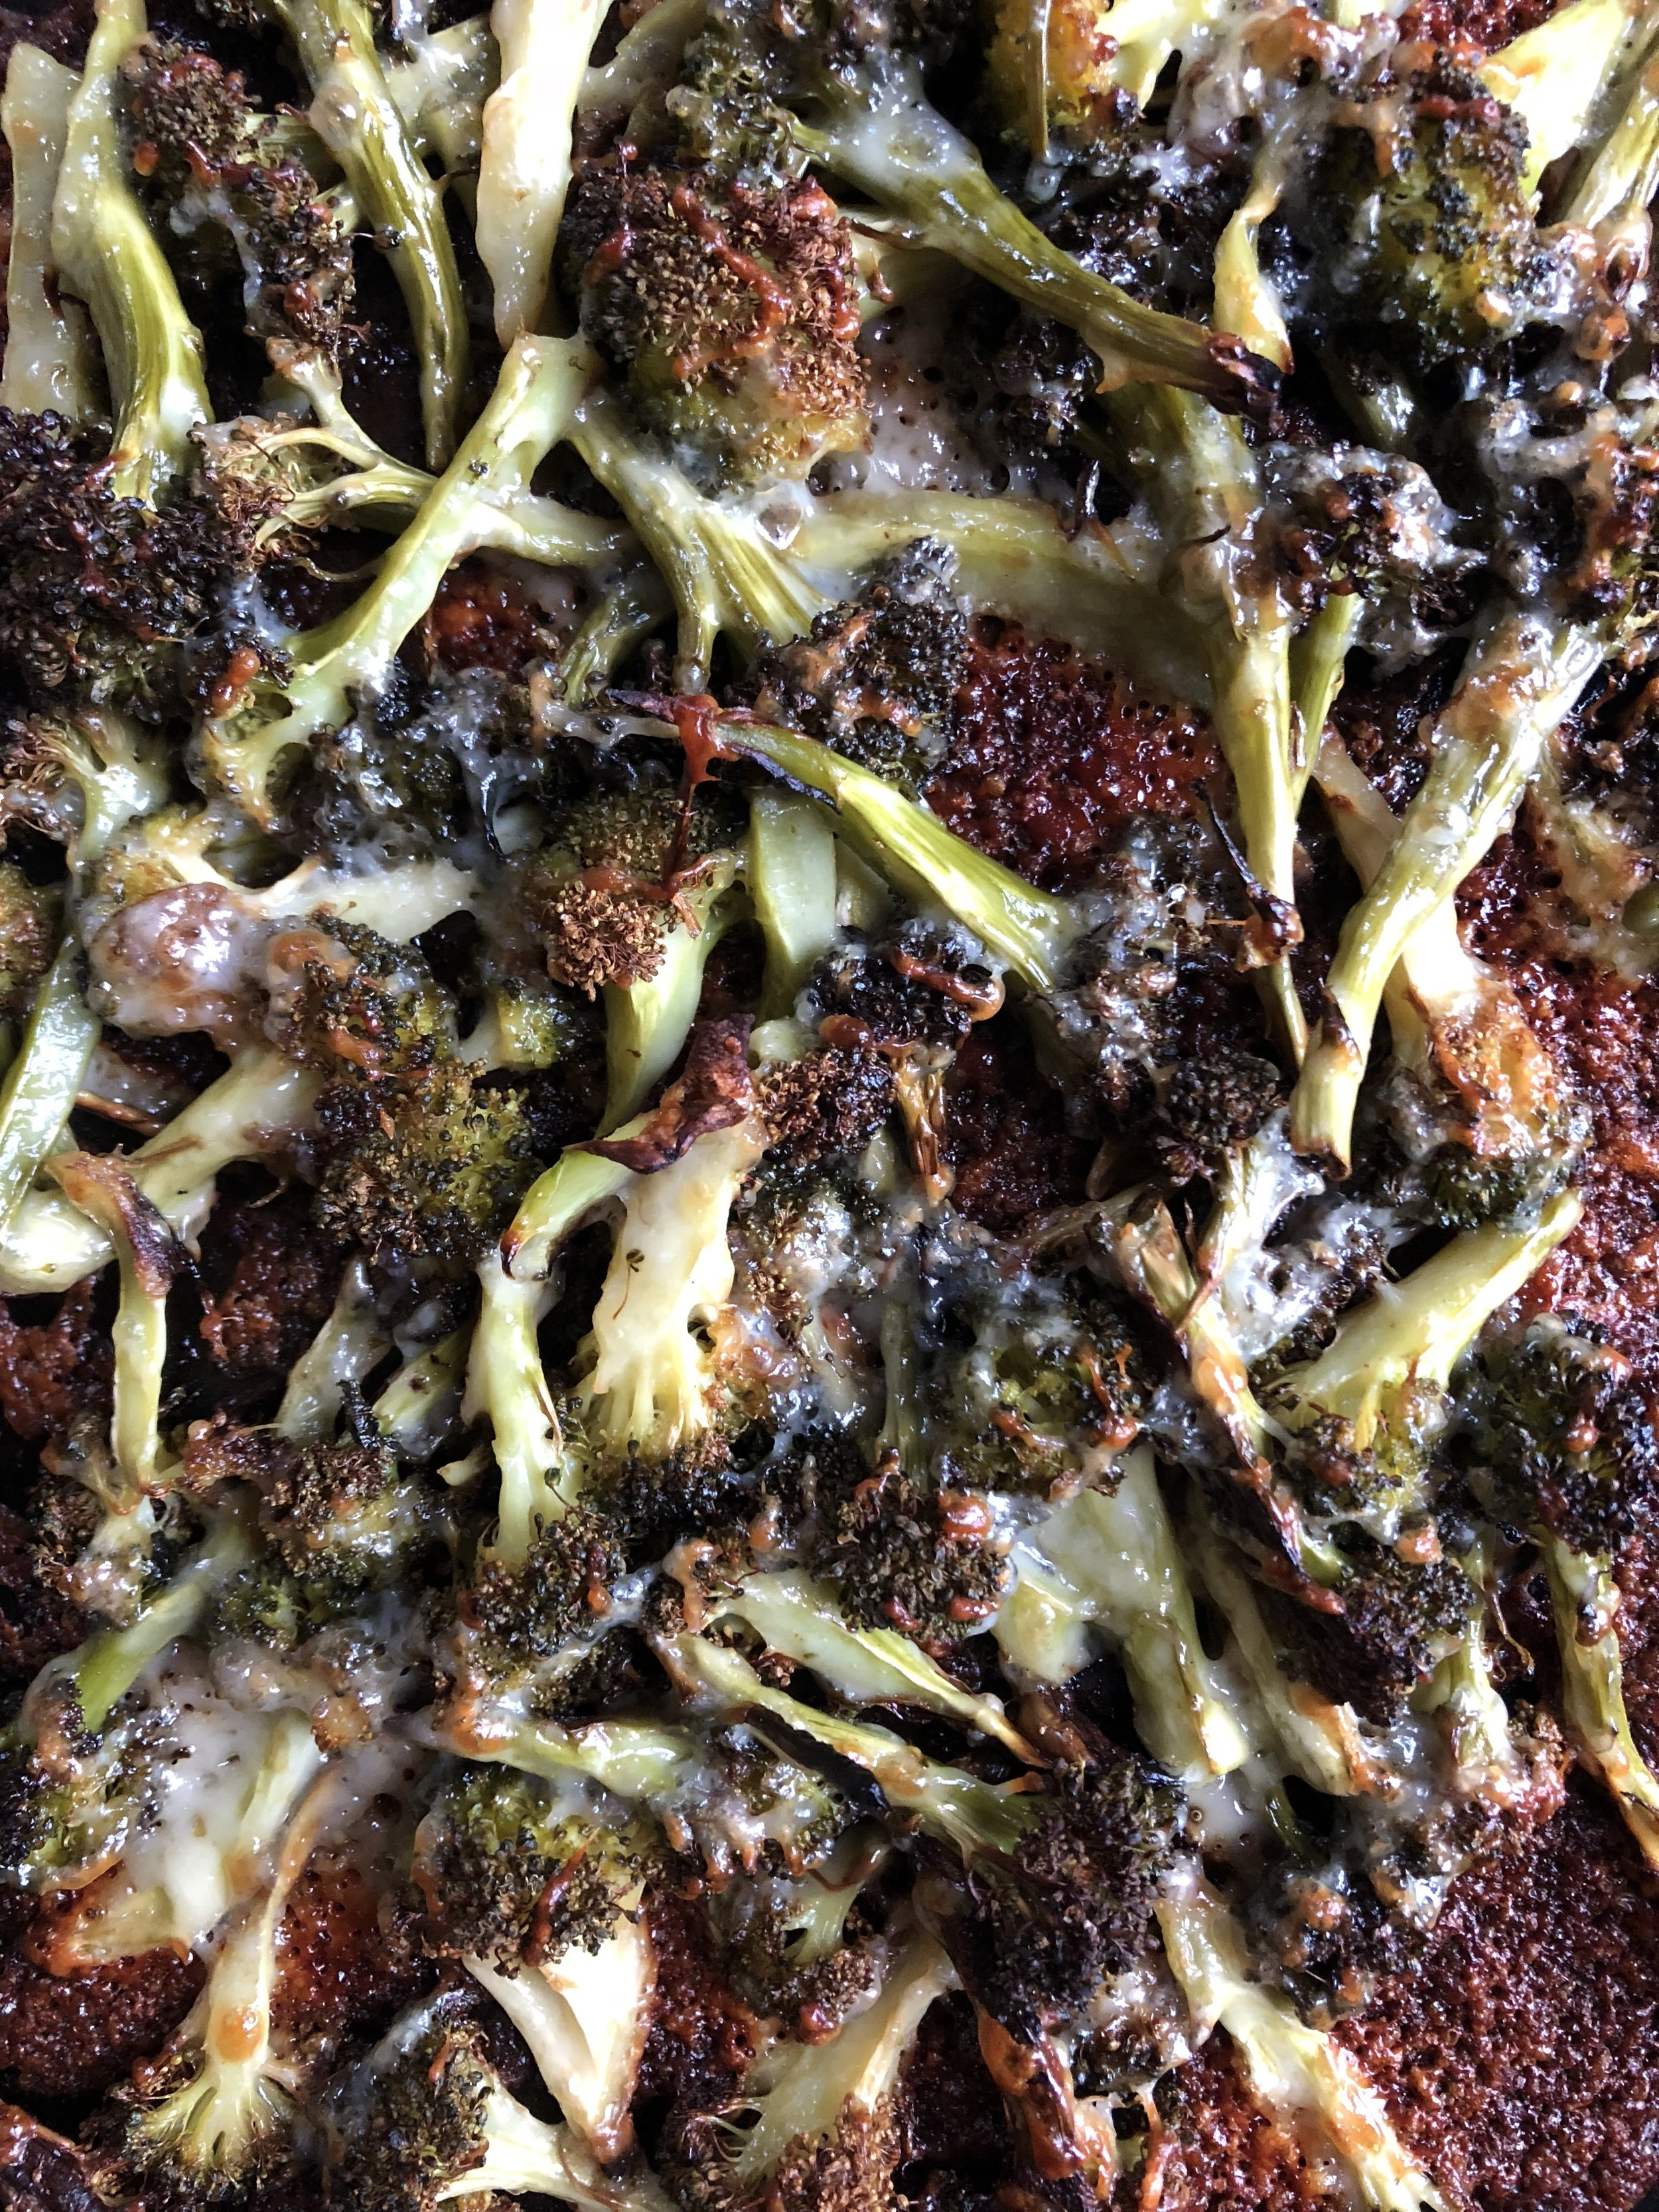 Roasted broccoli topped with parmesan cheese and browned